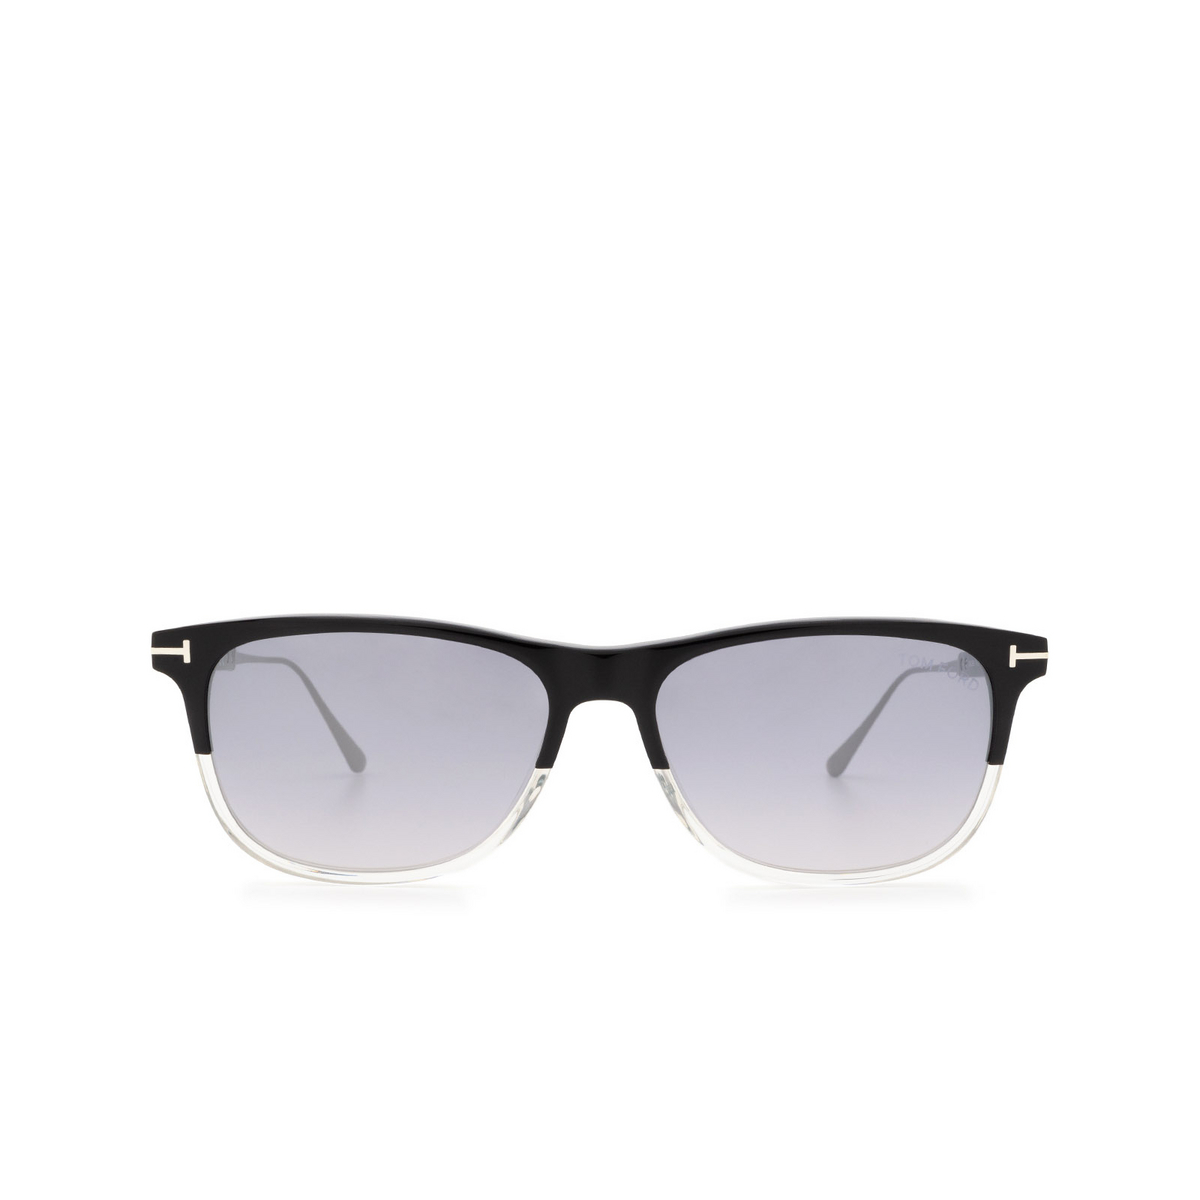 Tom Ford® Rectangle Sunglasses: Caleb FT0813 color Black & Crystal 03C - front view.